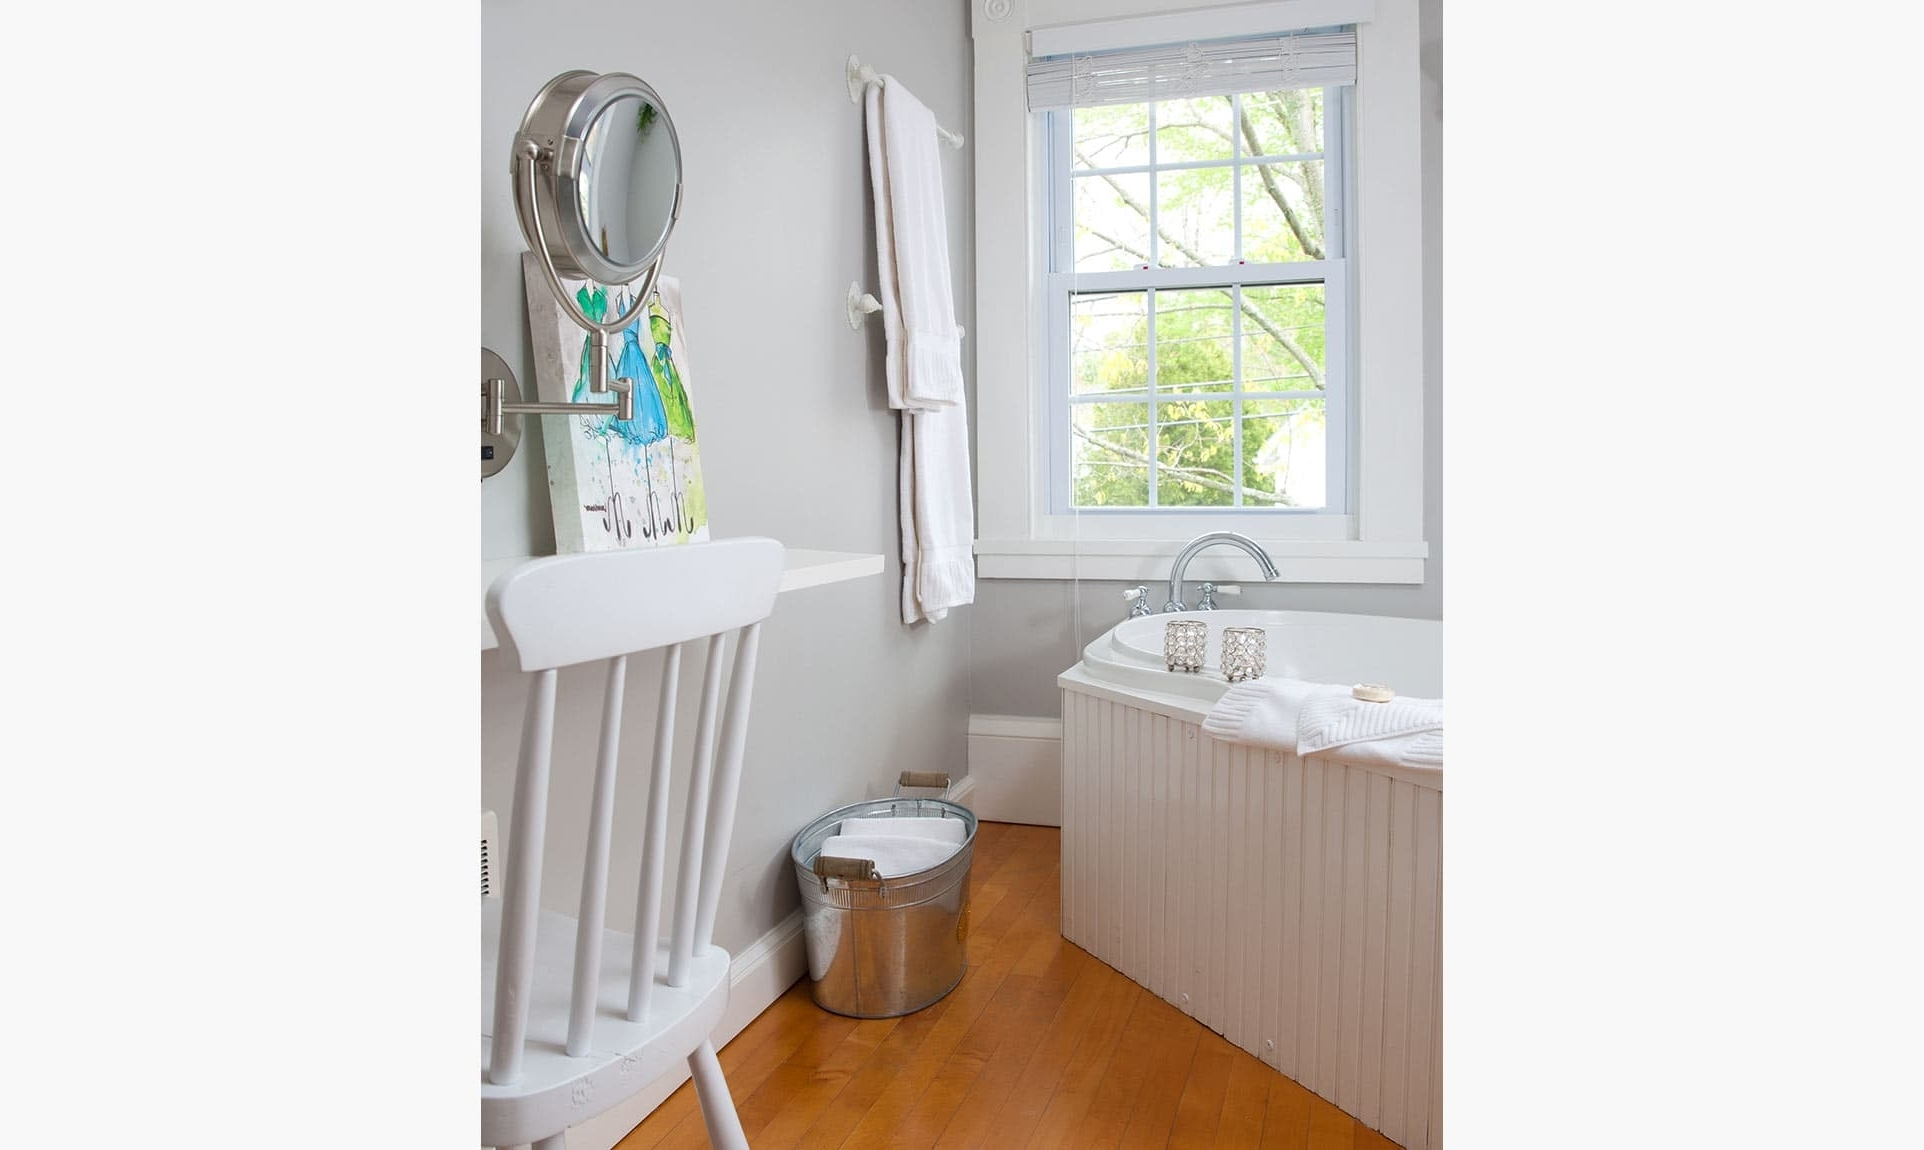 Midcoast Maine Lodging | Stay With The Best That Camden Has Champagne Bathroom Suite